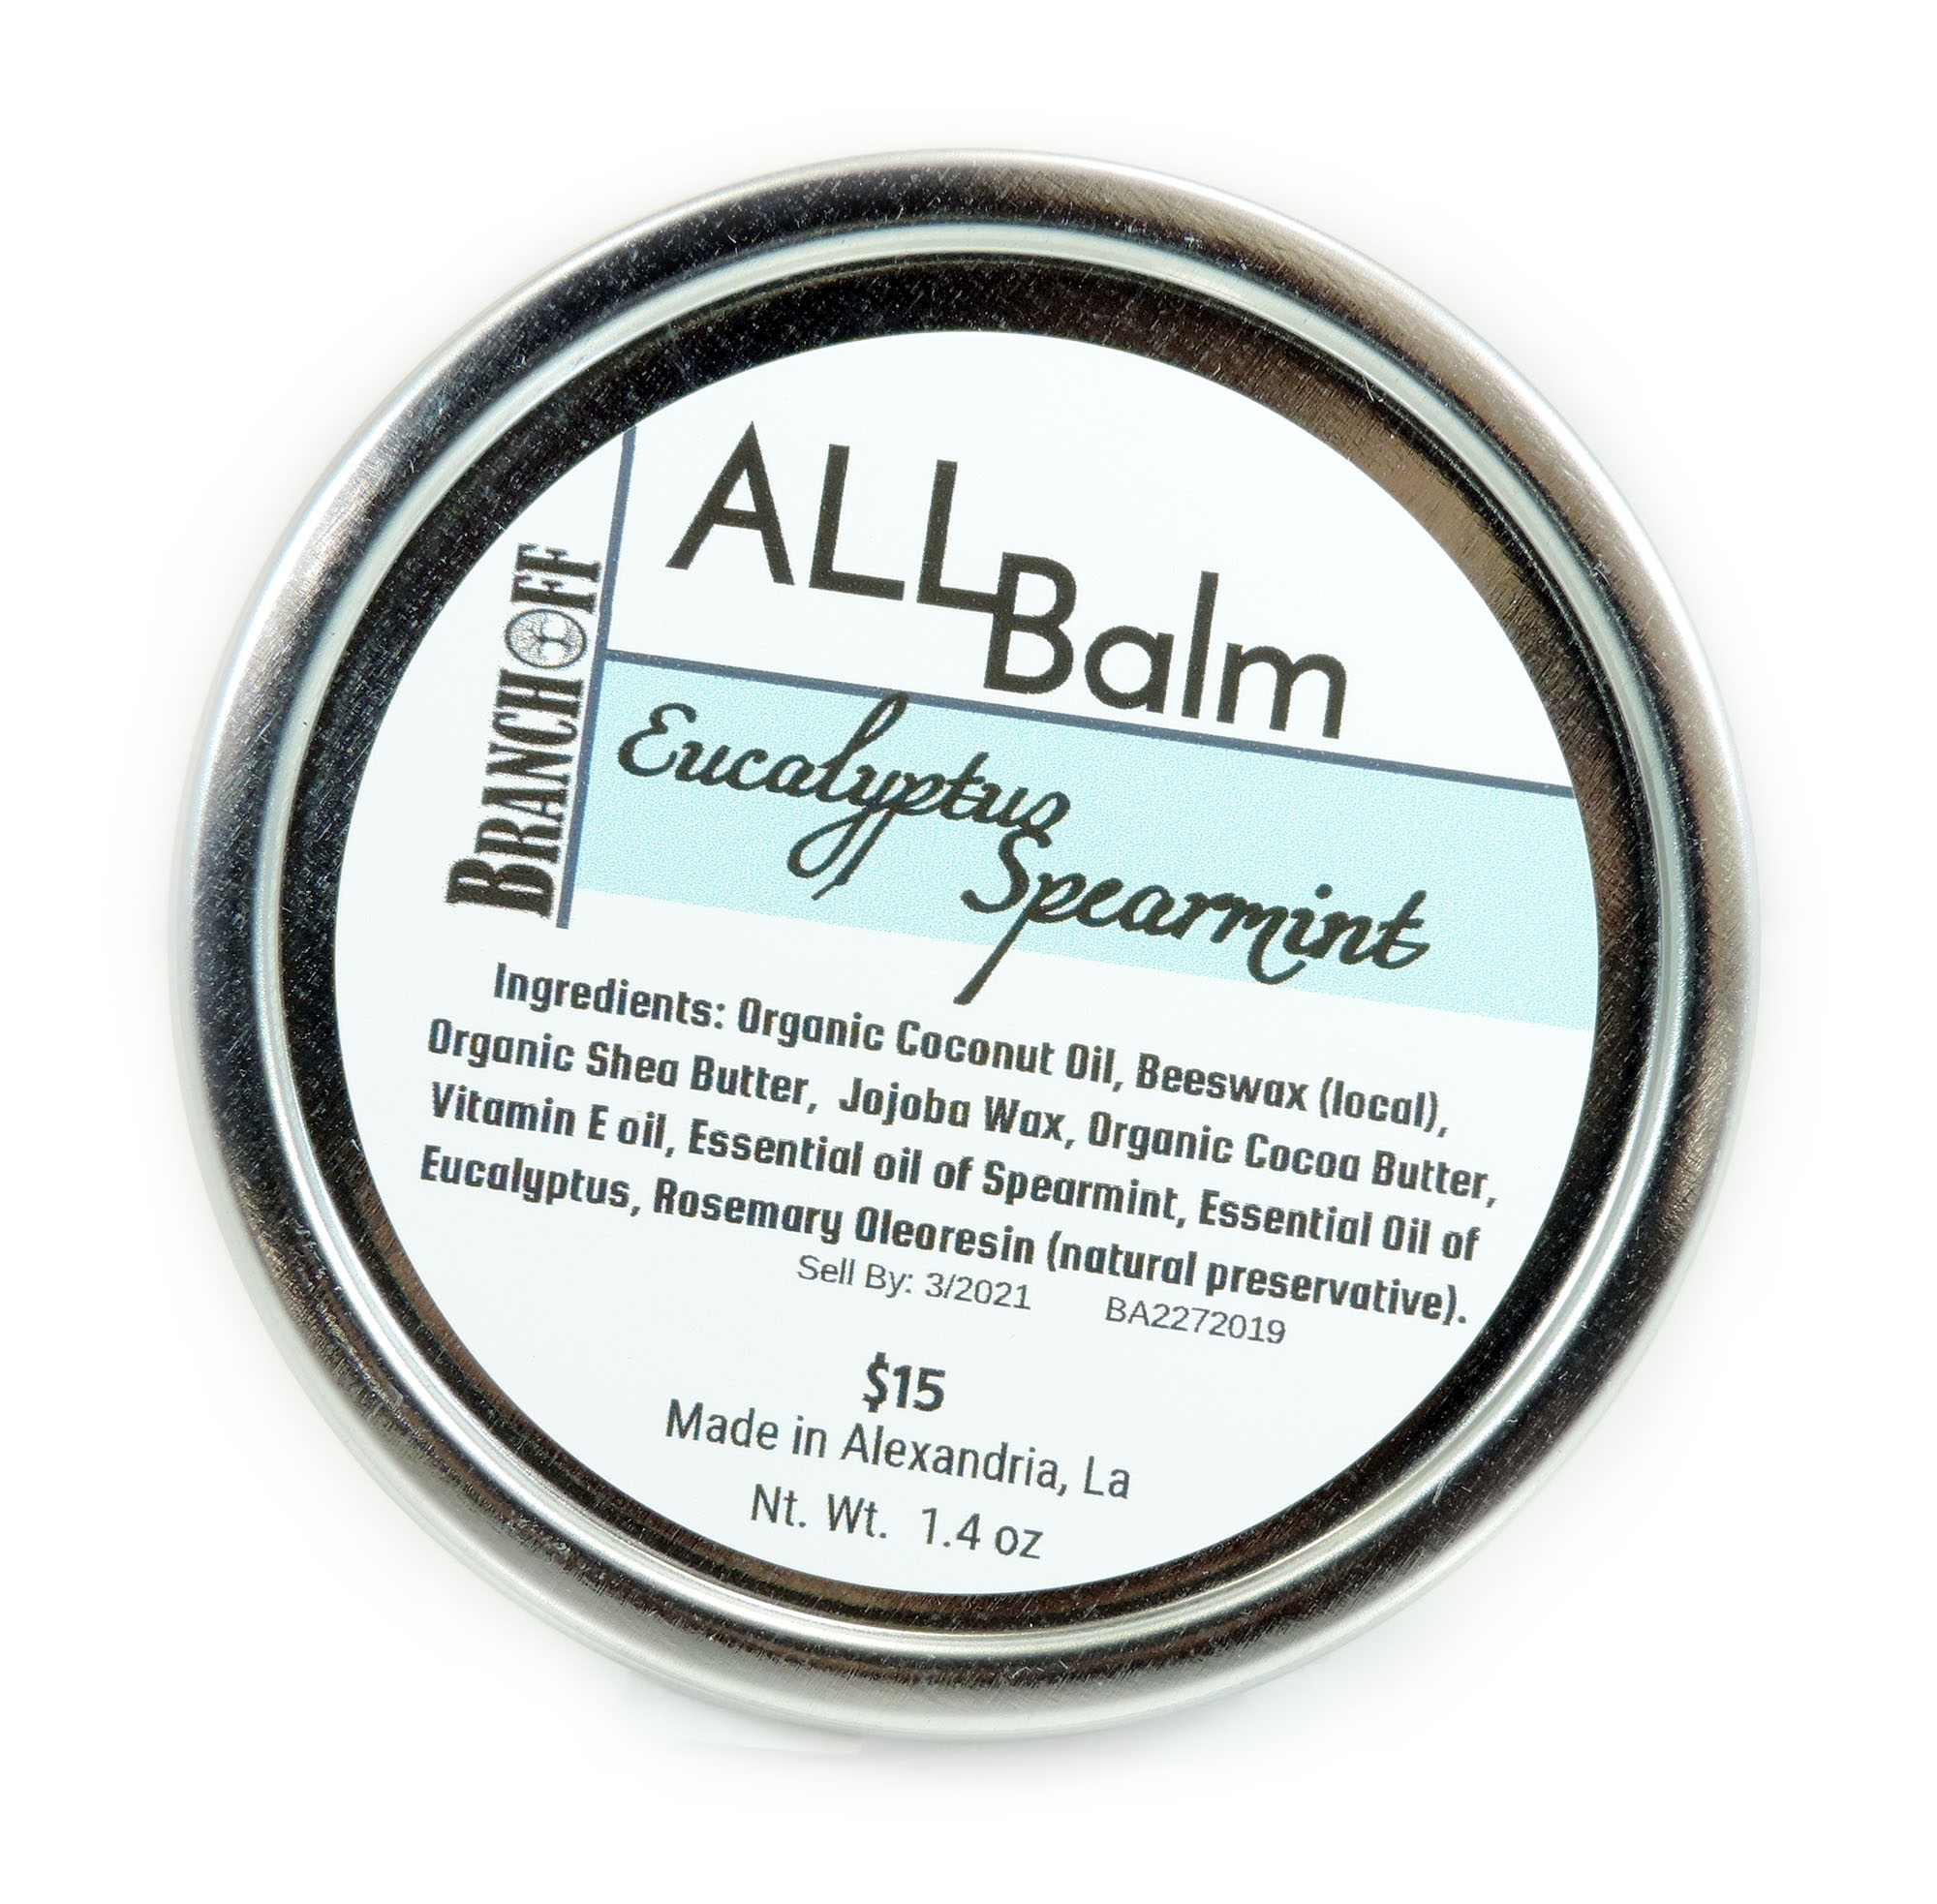 Allover Beard Balm